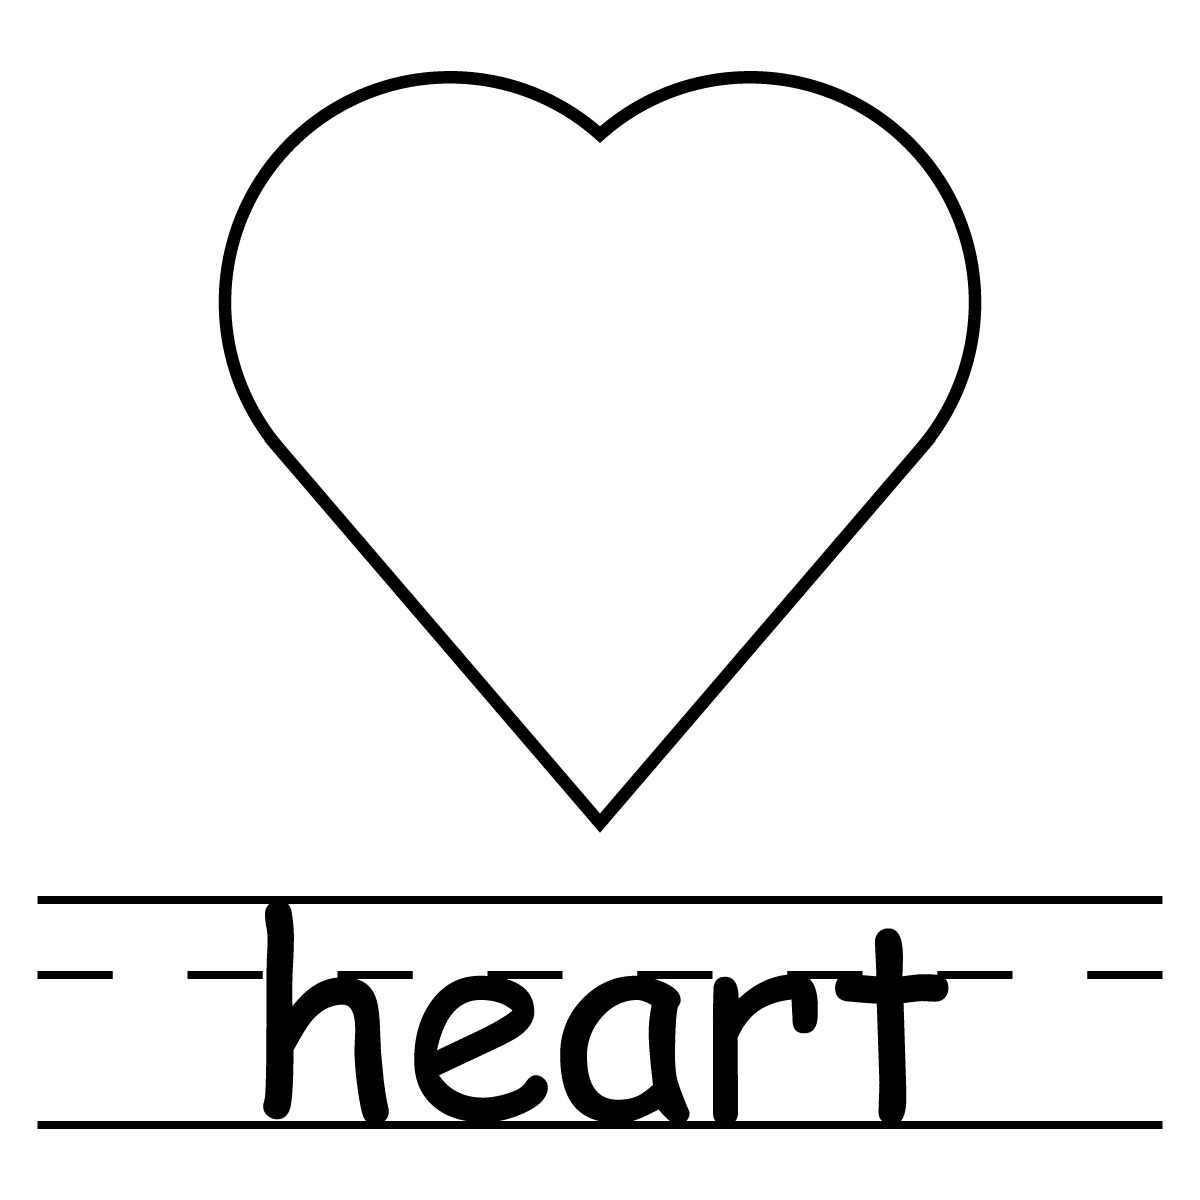 Free Heart Shapes Pictures Download Free Clip Art Free